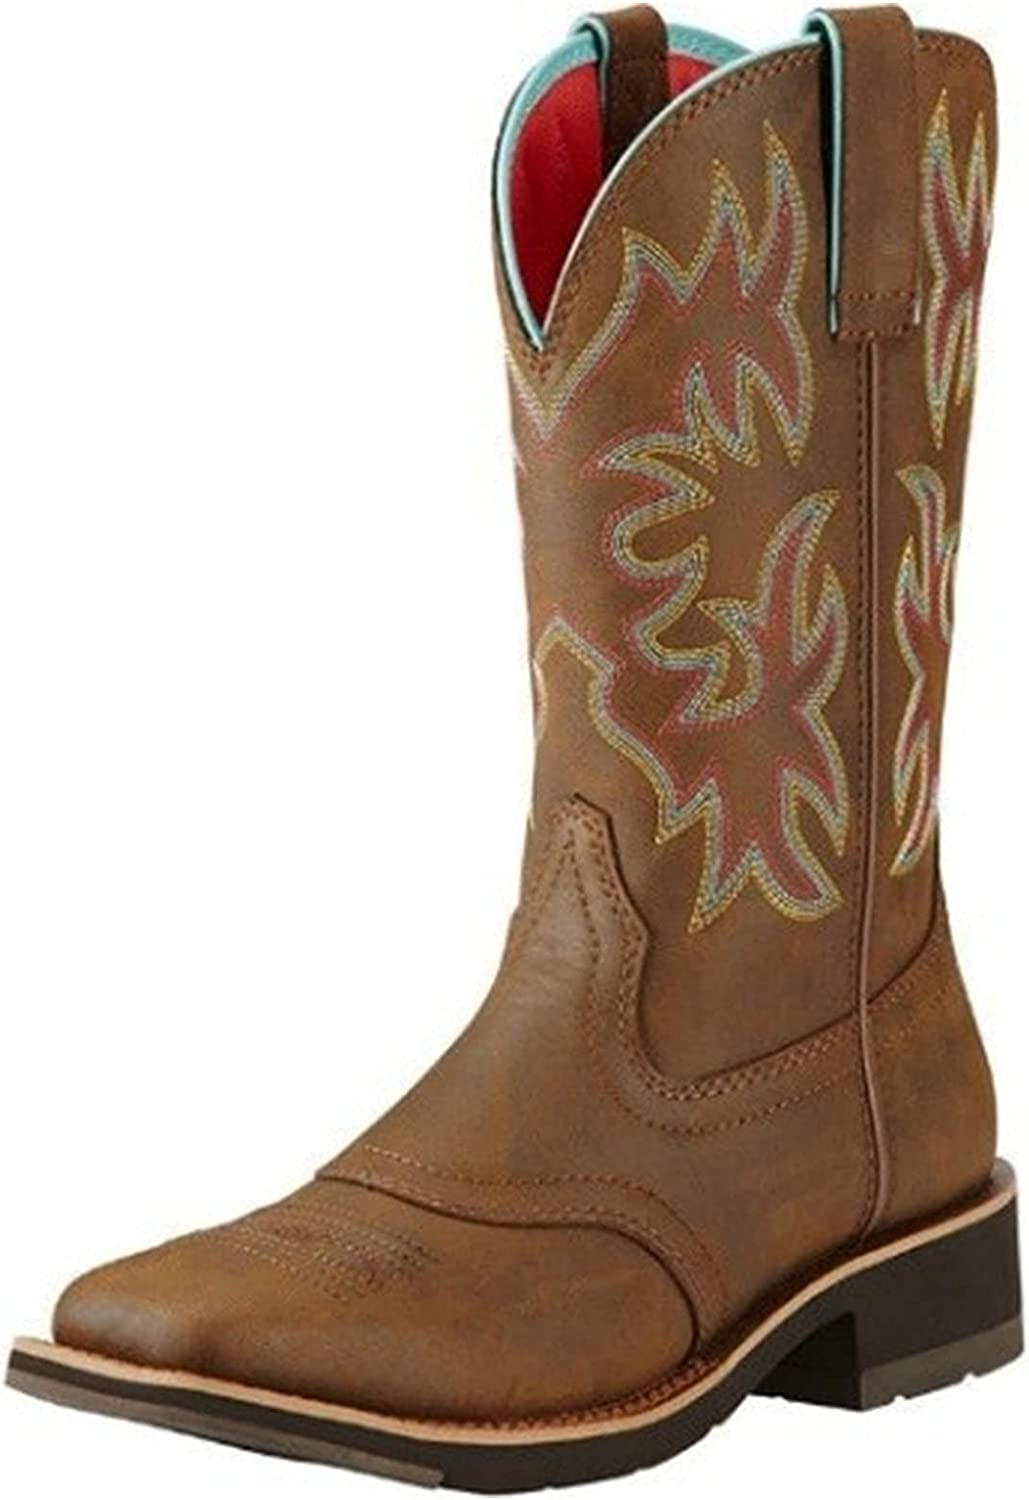 MeiLuSi Cowgirl Boots for Women Vintage Embroidery Cowboy Western Boots Square Toe Floral Mid Calf Boots